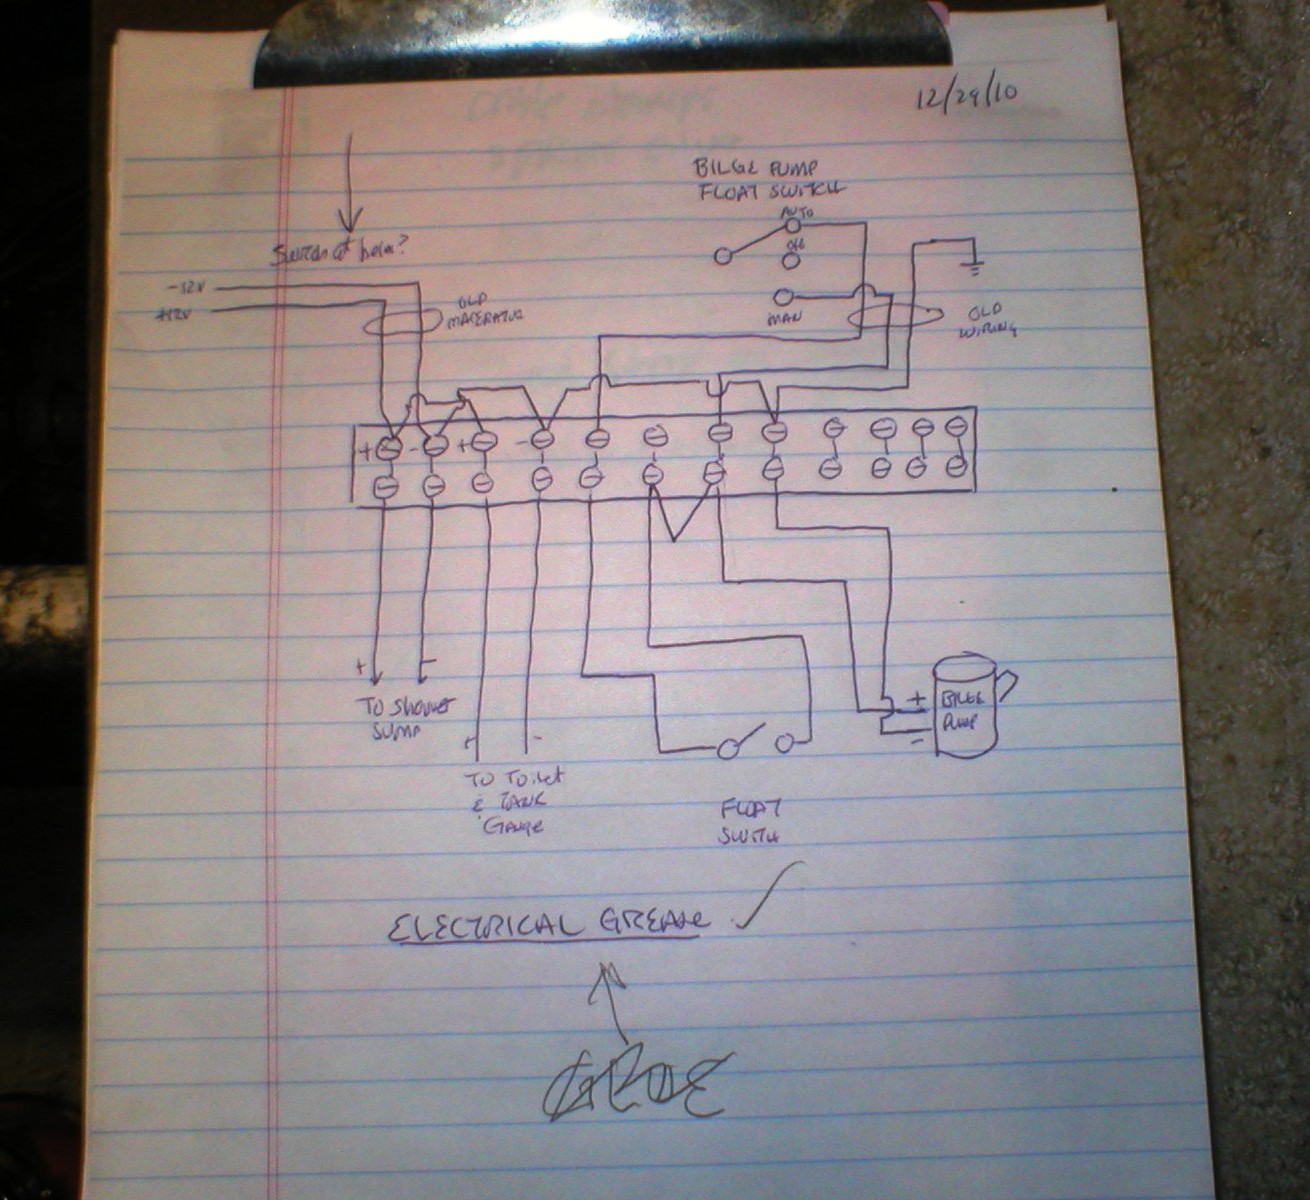 Bilge+schematic silverton 34c rat's nest revisited johnson pump switch wiring diagrams at cos-gaming.co